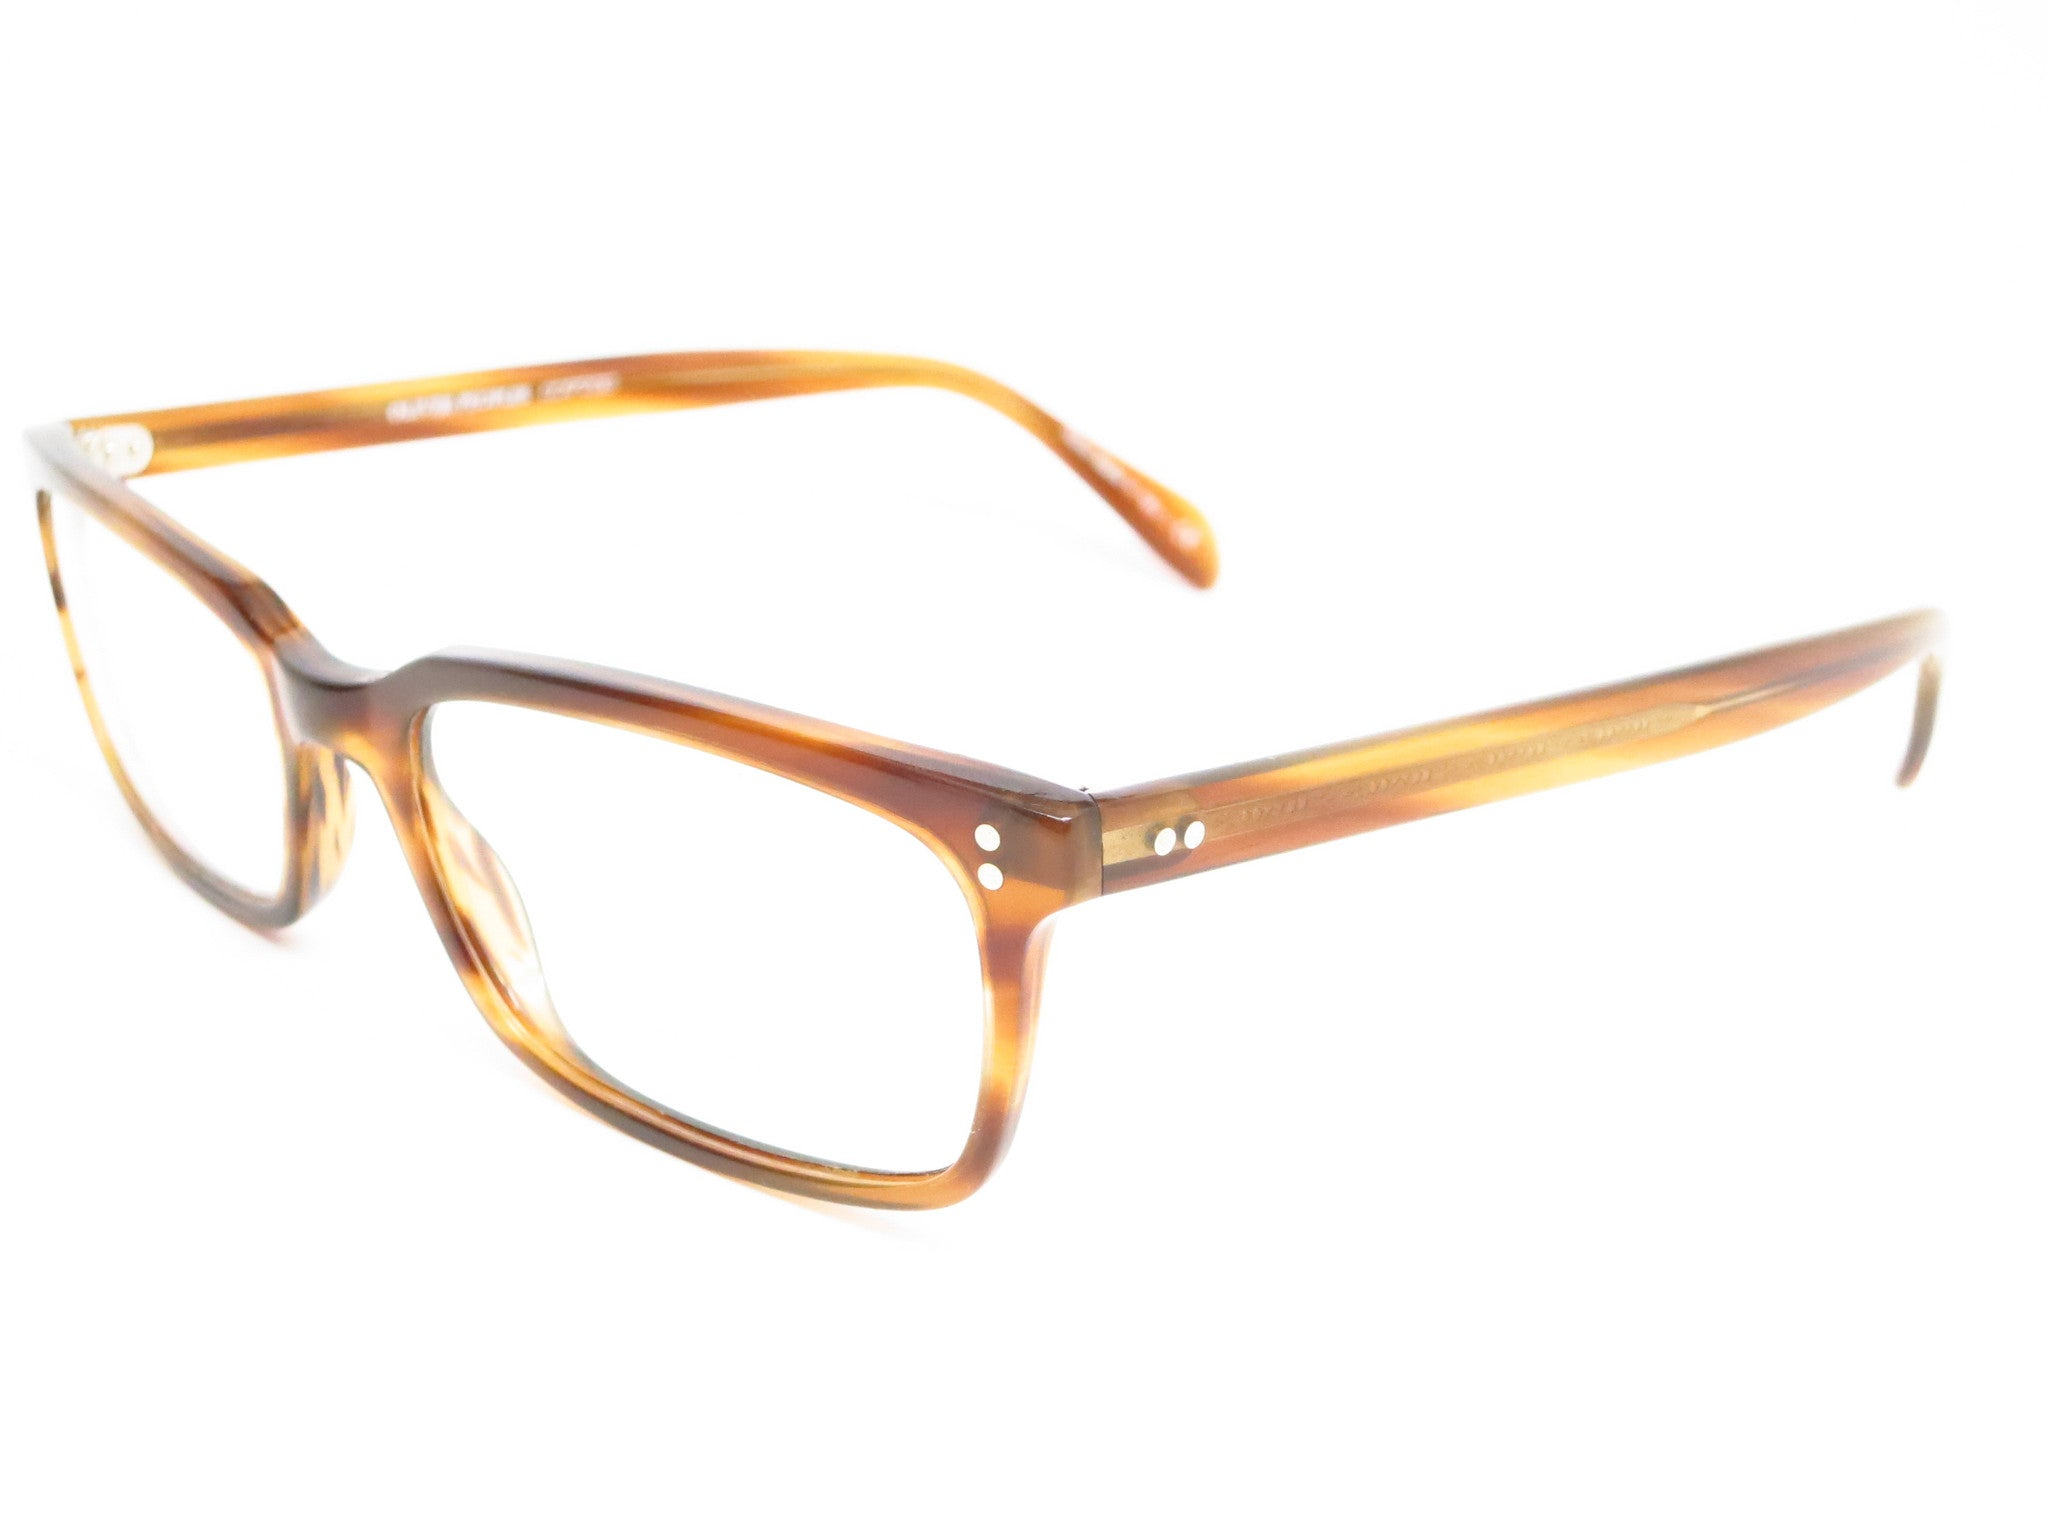 d91b6739c7 Oliver Peoples OV 5102 Denison 1156 Sandal Wood Eyeglasses - Eye Heart  Shades - Oliver Peoples ...